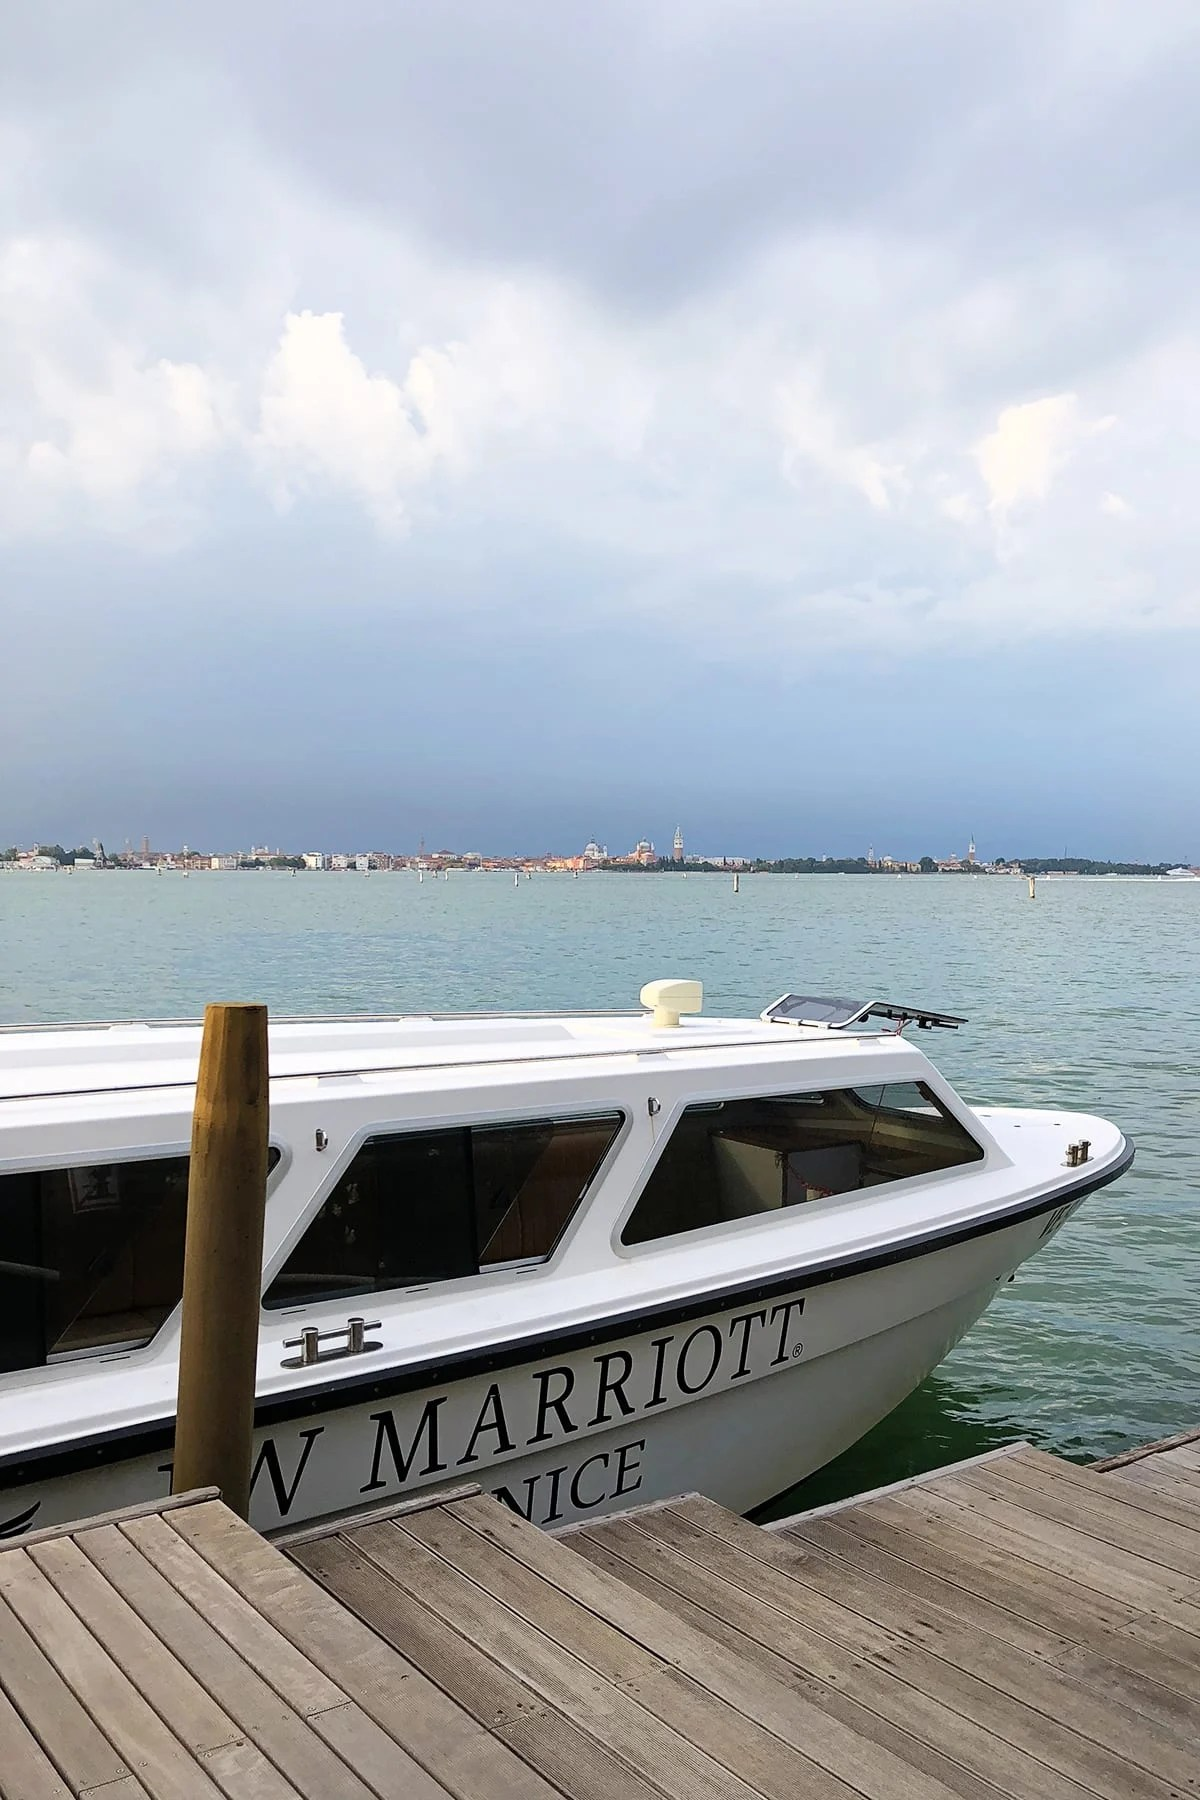 Jw marriott venice italy private water taxi